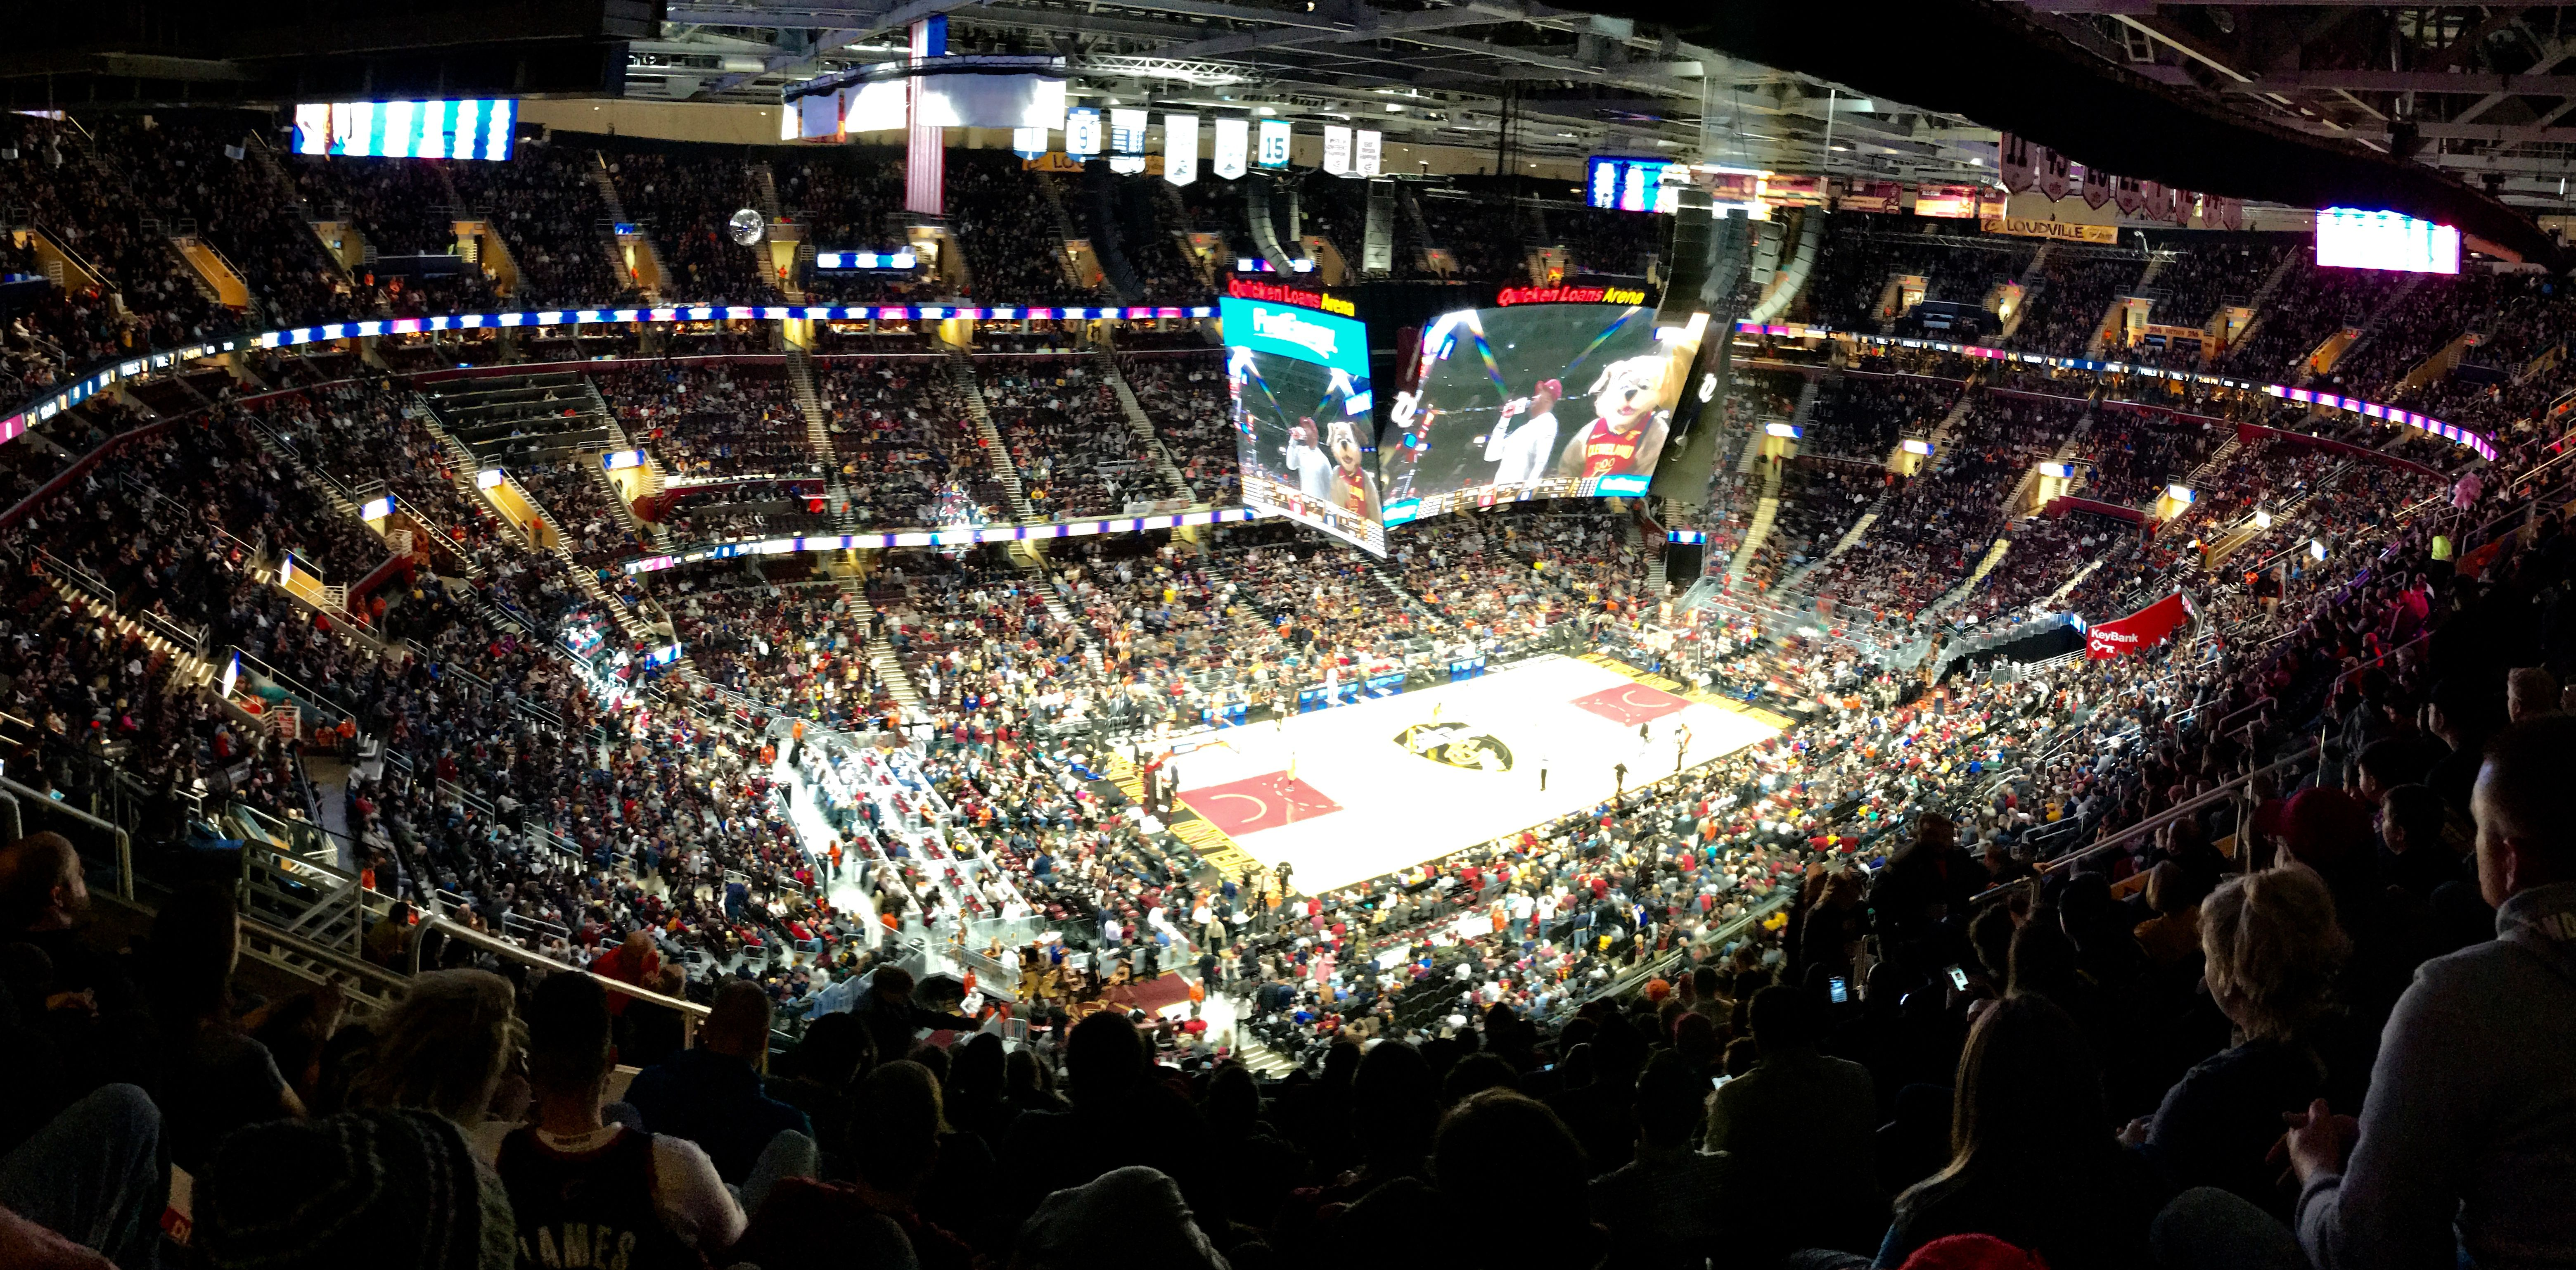 Panorama View Of Quicken Loans Arena Cleveland Cavaliers Vs Indiana Pacers 2018 Quicken Loans Arena Iphone Pictures Panorama